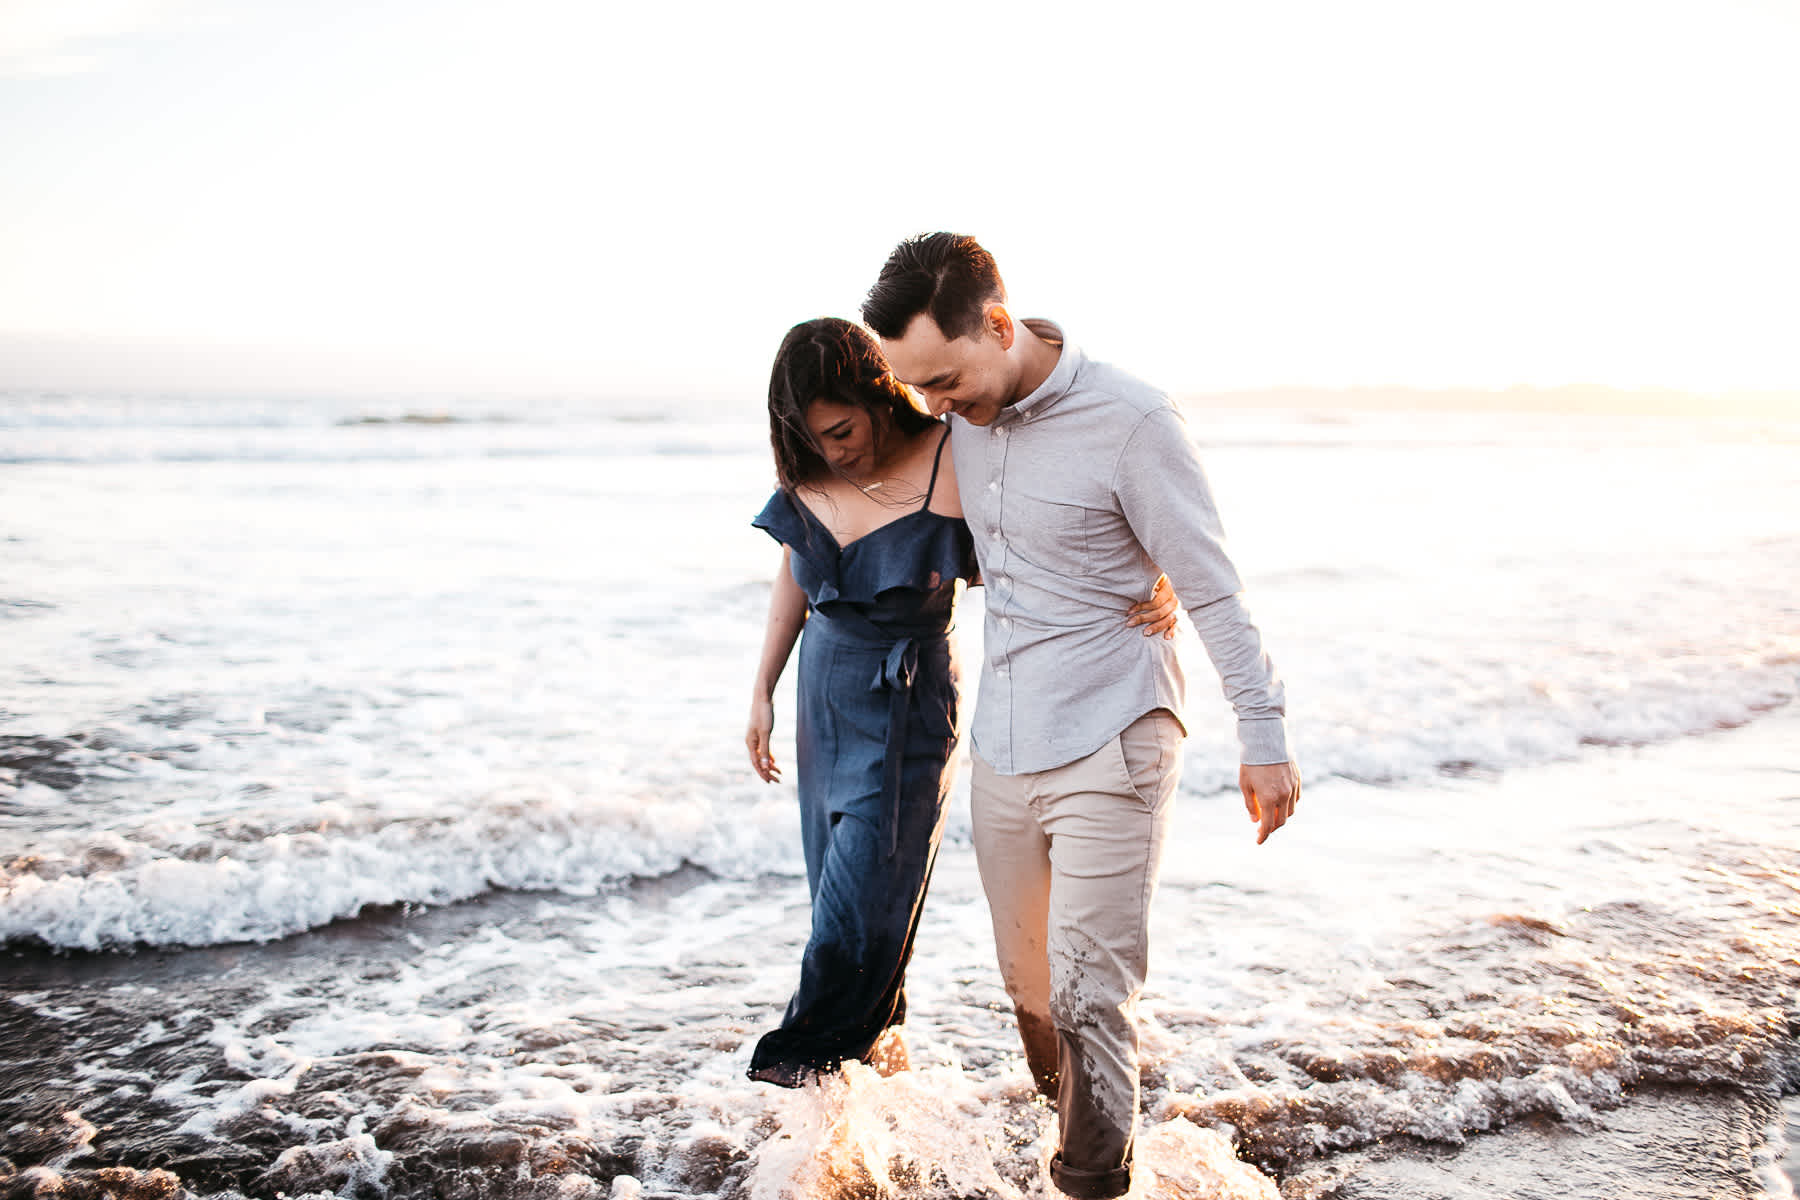 stinson-beach-muir-woods-sf-fun-quirky-engagement-session-37